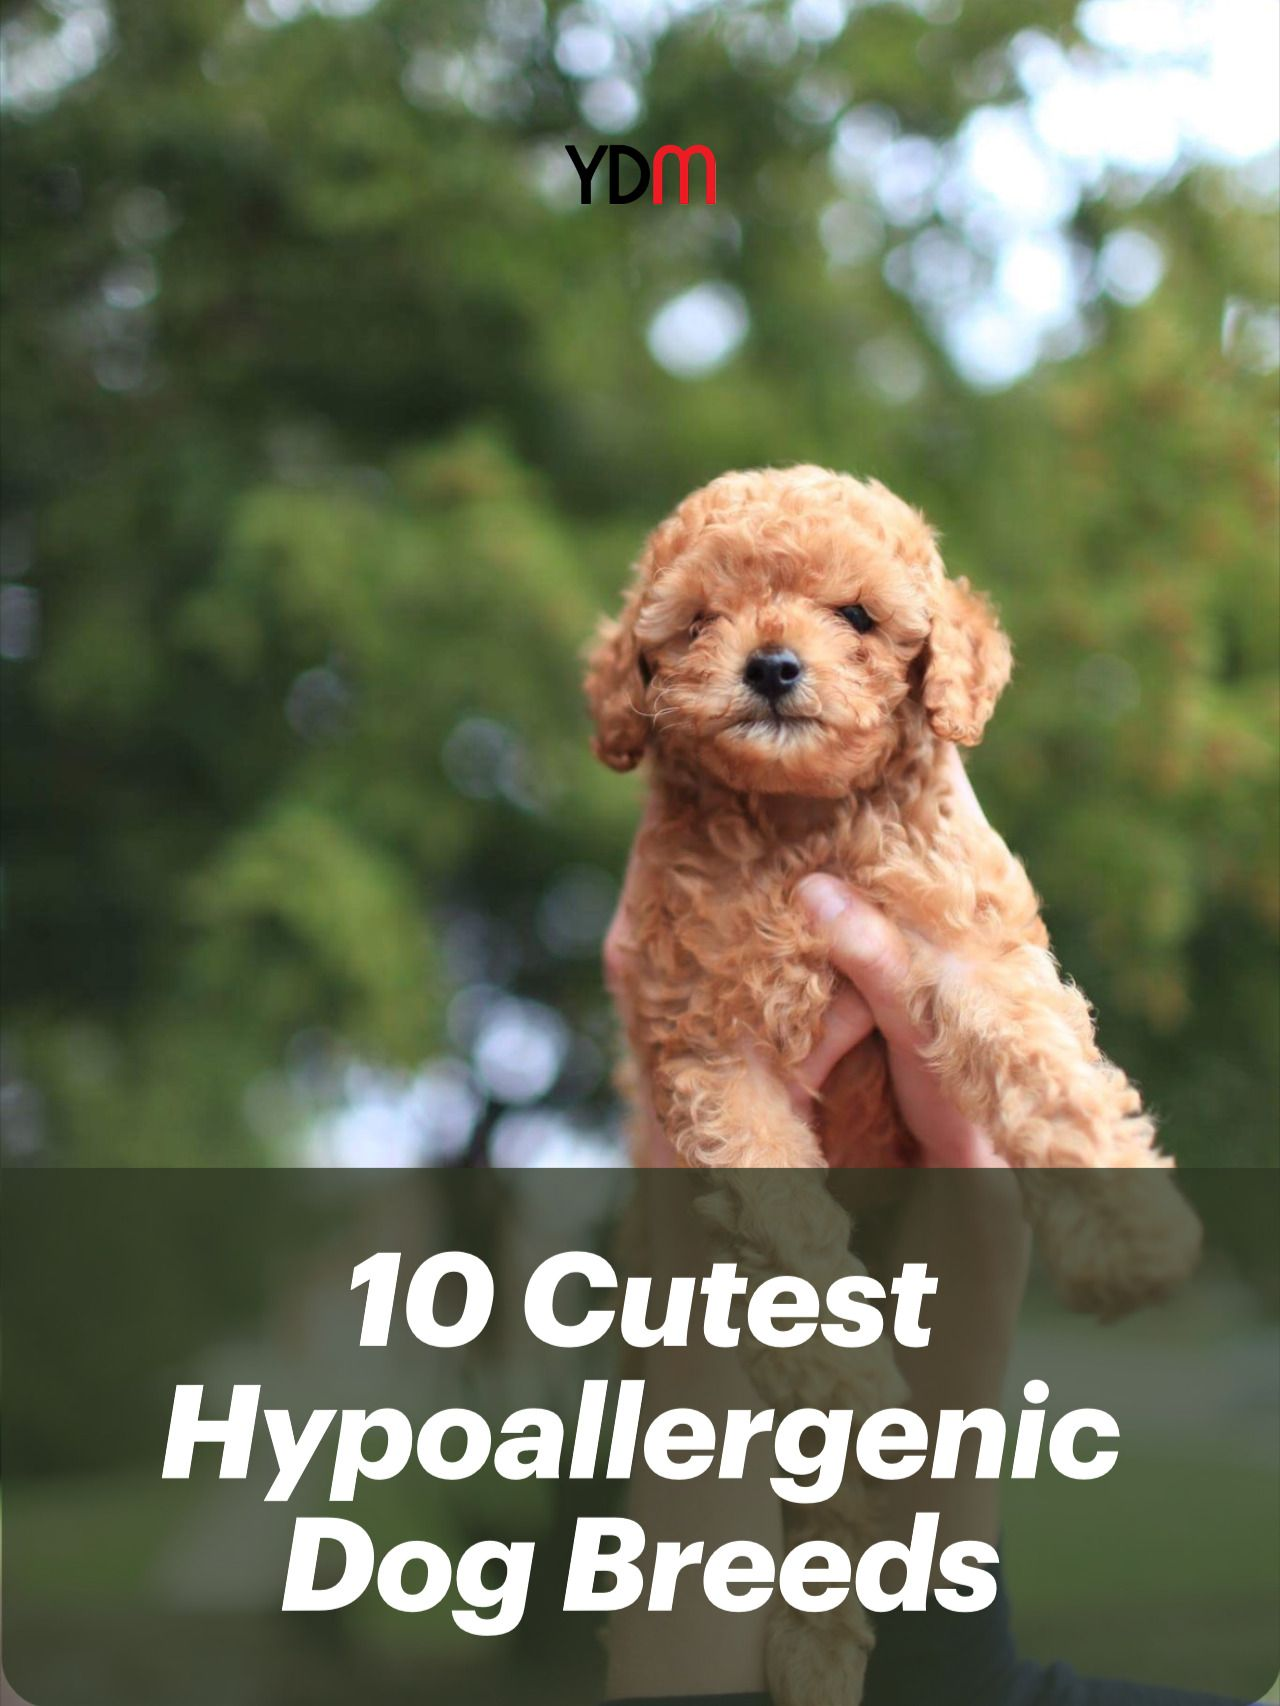 10 Cutest Hypoallergenic Dog Breeds You Can Own In 2020 Hypoallergenic Dogs Hypoallergenic Dog Breed Dog Breeds